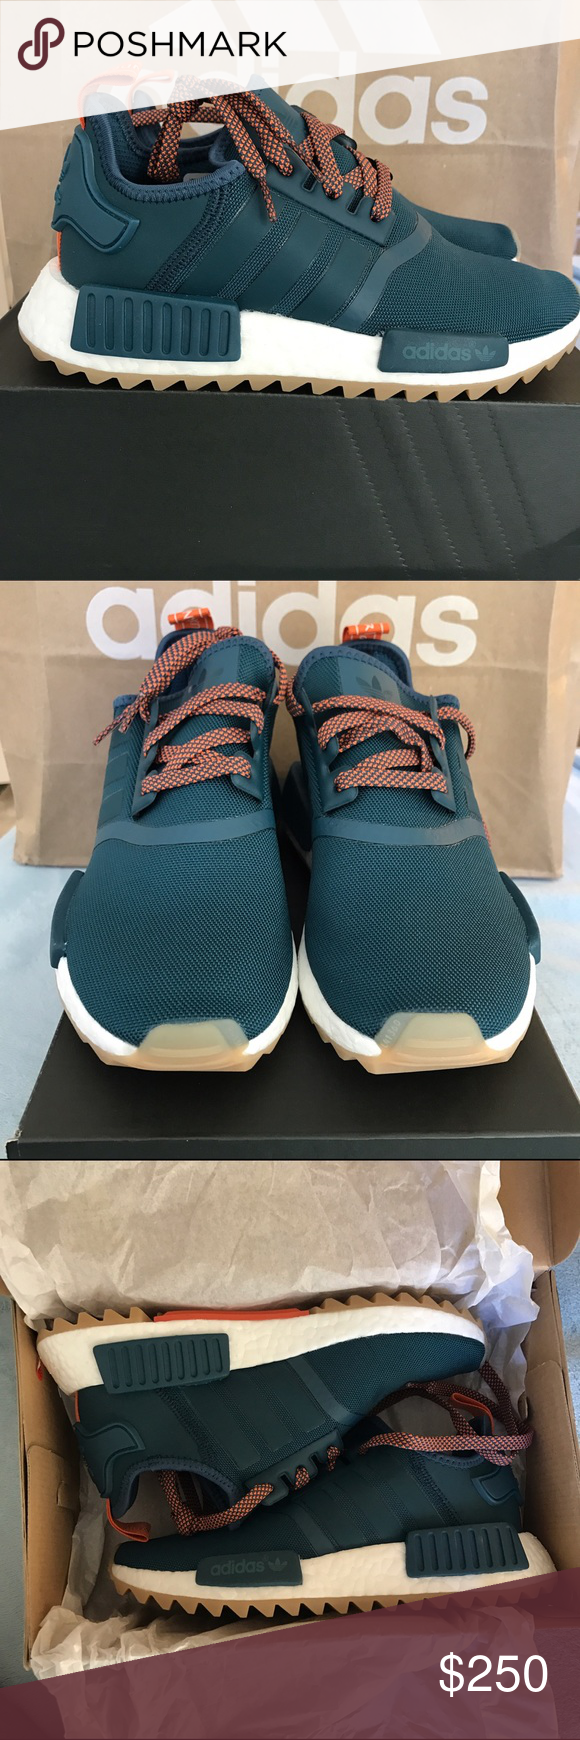 7f98ae7f421a Adidas NMD R1 Trail Shoes Turquoise Women s 5.5 Adidas Originals NMD R1  Trail W Shoes Women s Size 5.5   EU 36 2 3 Fits like a Women s 6 Deadstock